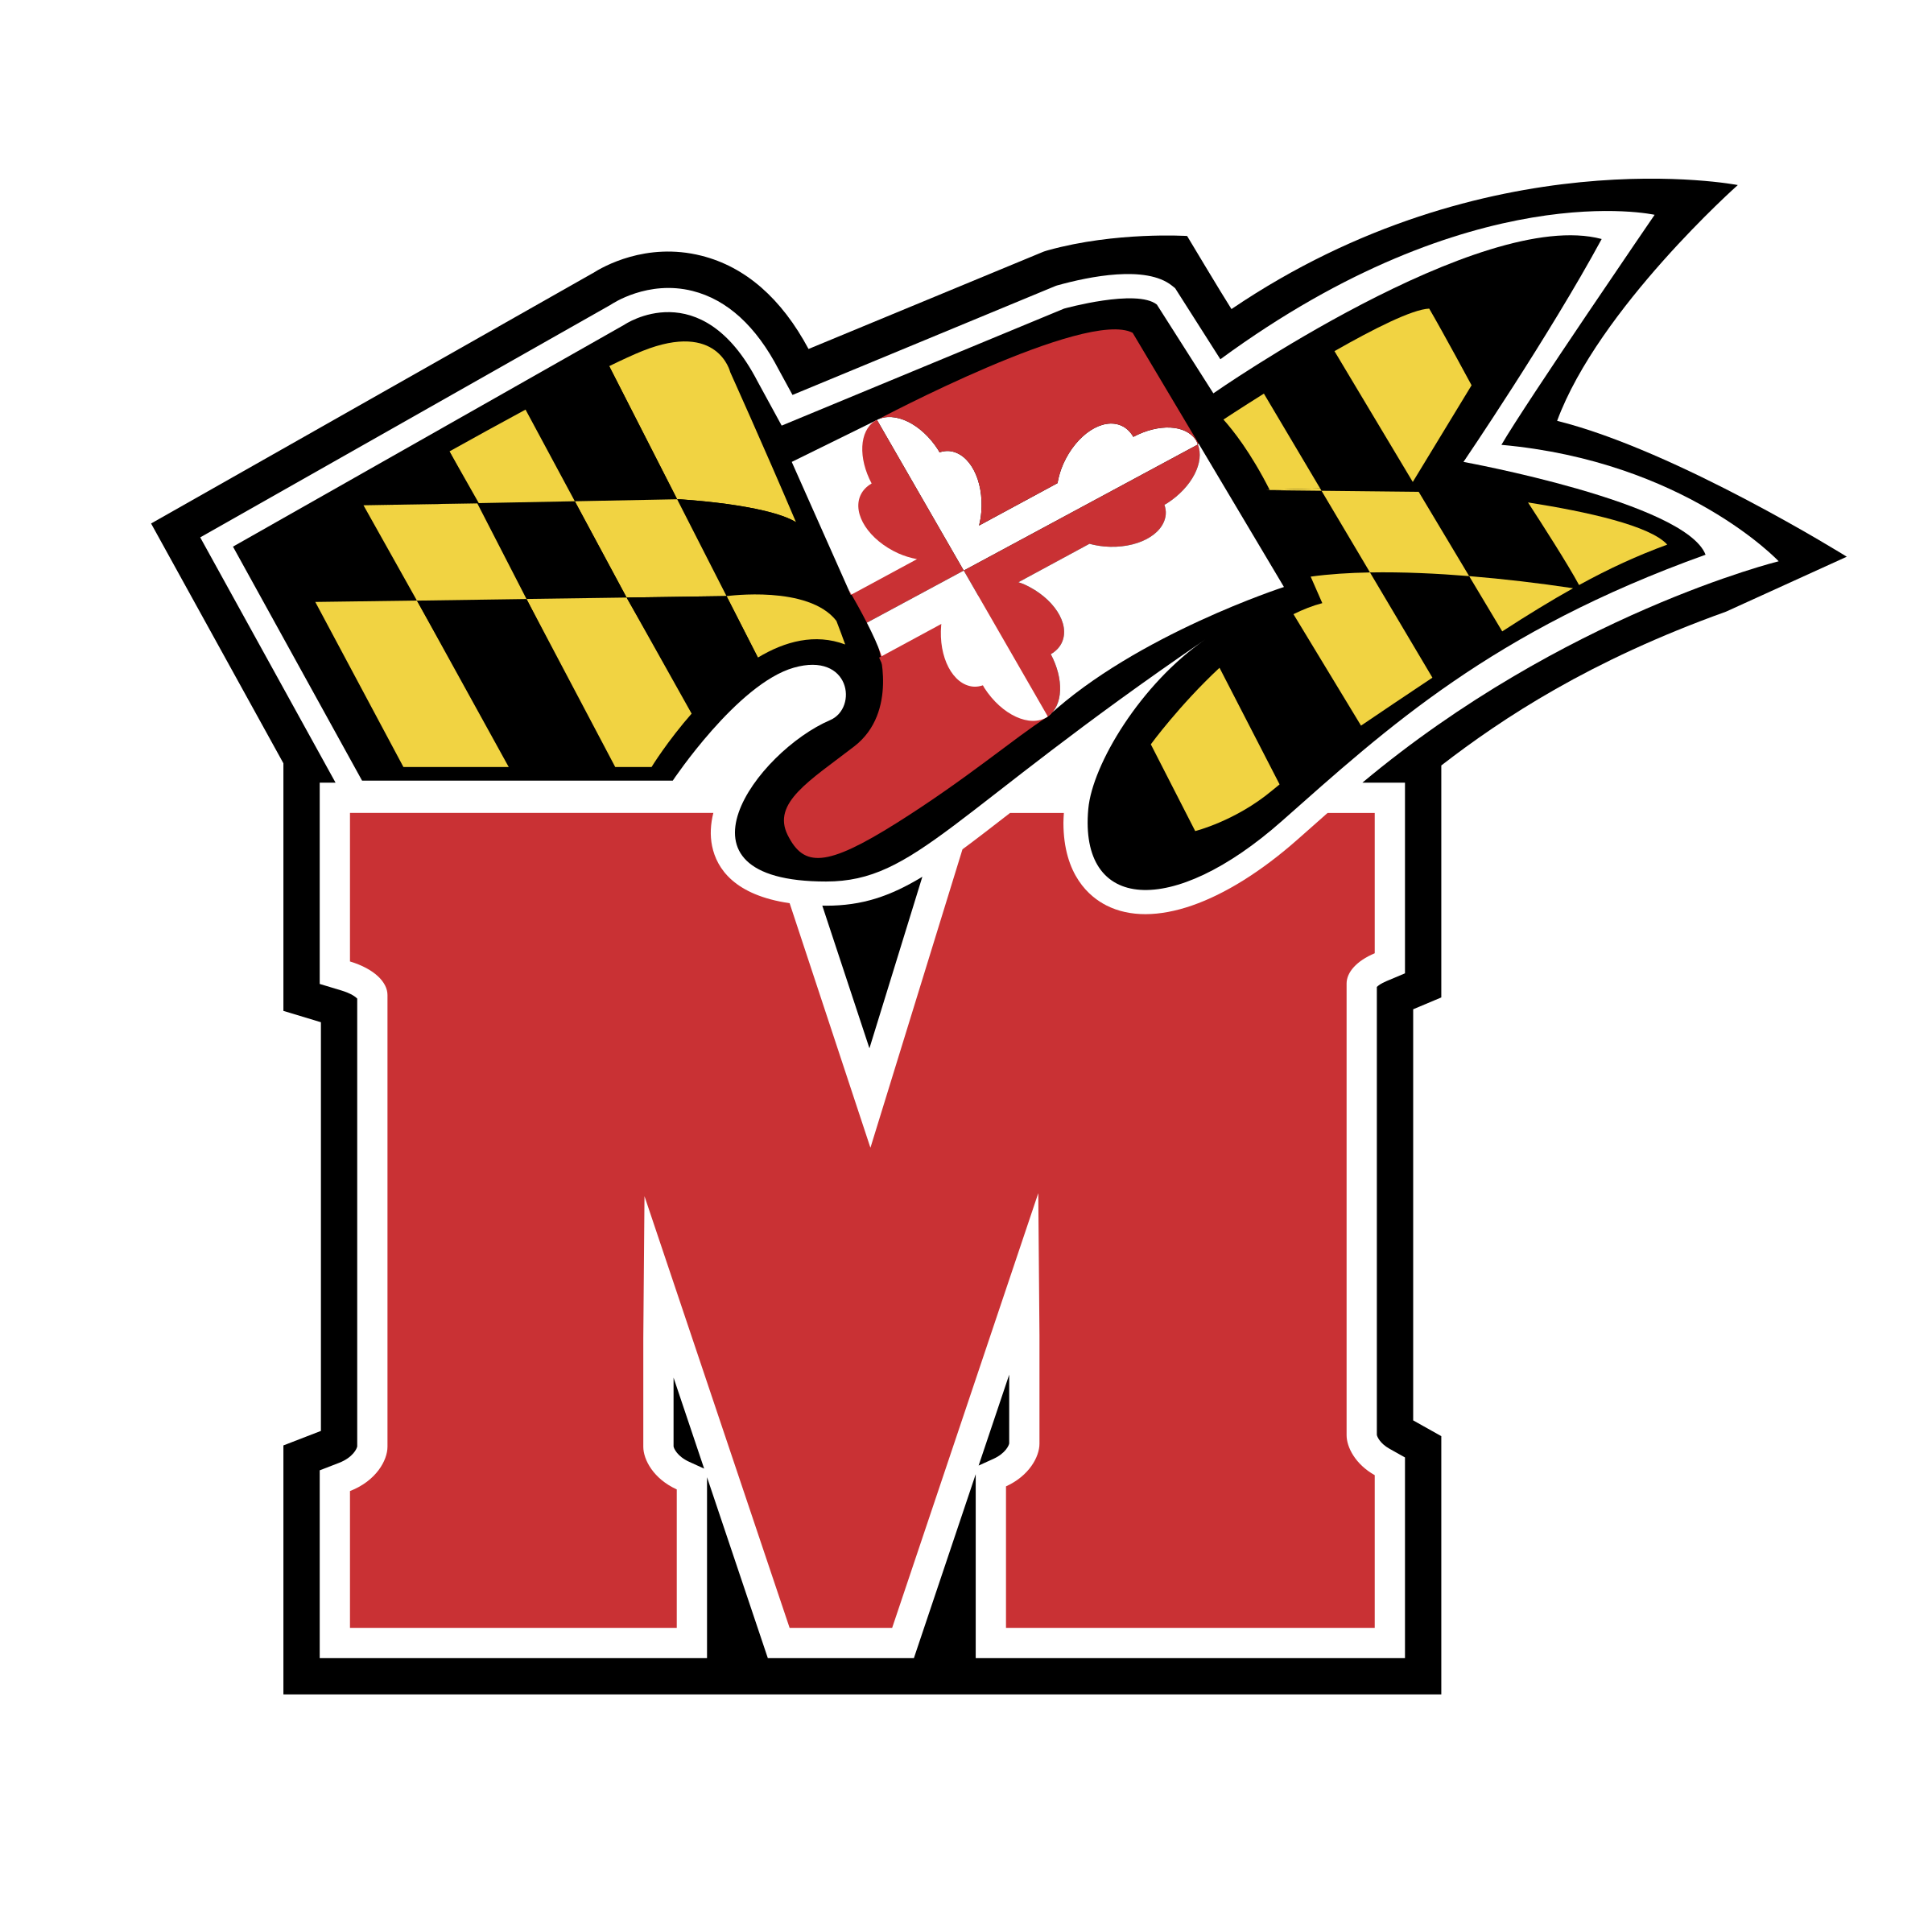 Maryland Terps Logo PNG Transparent & SVG Vector.